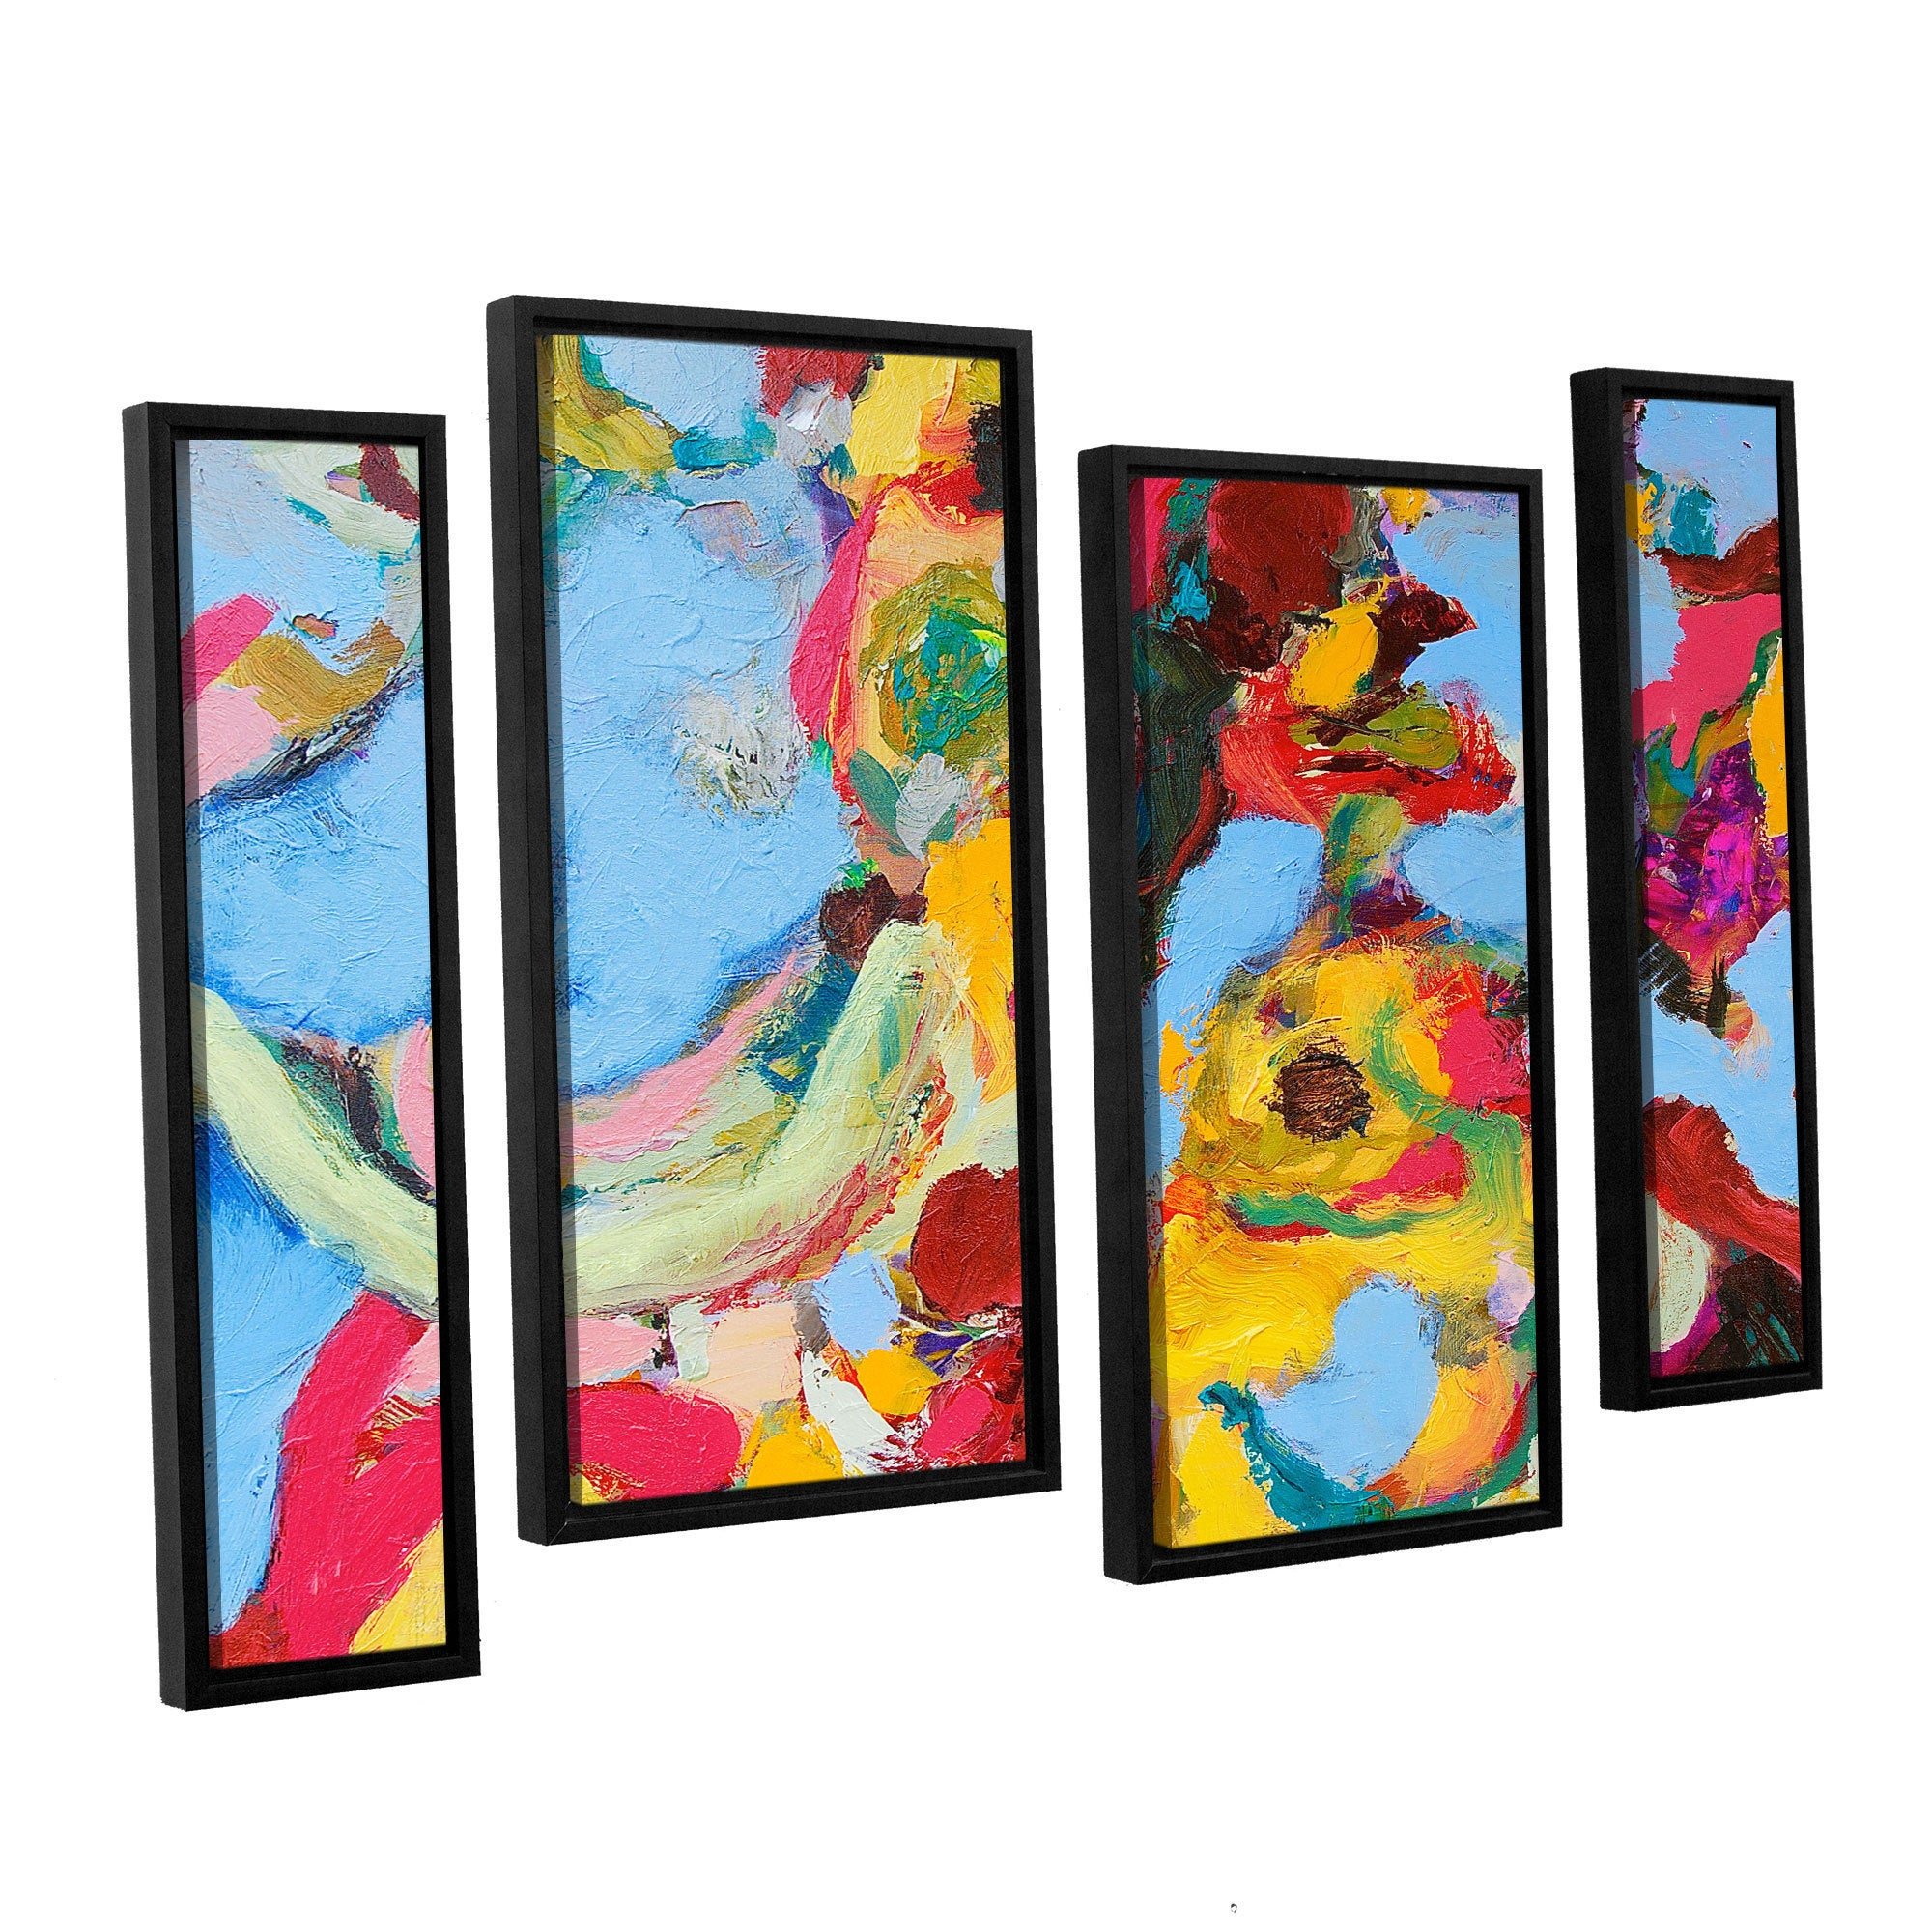 Artwall Allan Friedlander Gathering Season 4 Piece Floater Framed Canvas Staggered Set Overstock 10403951